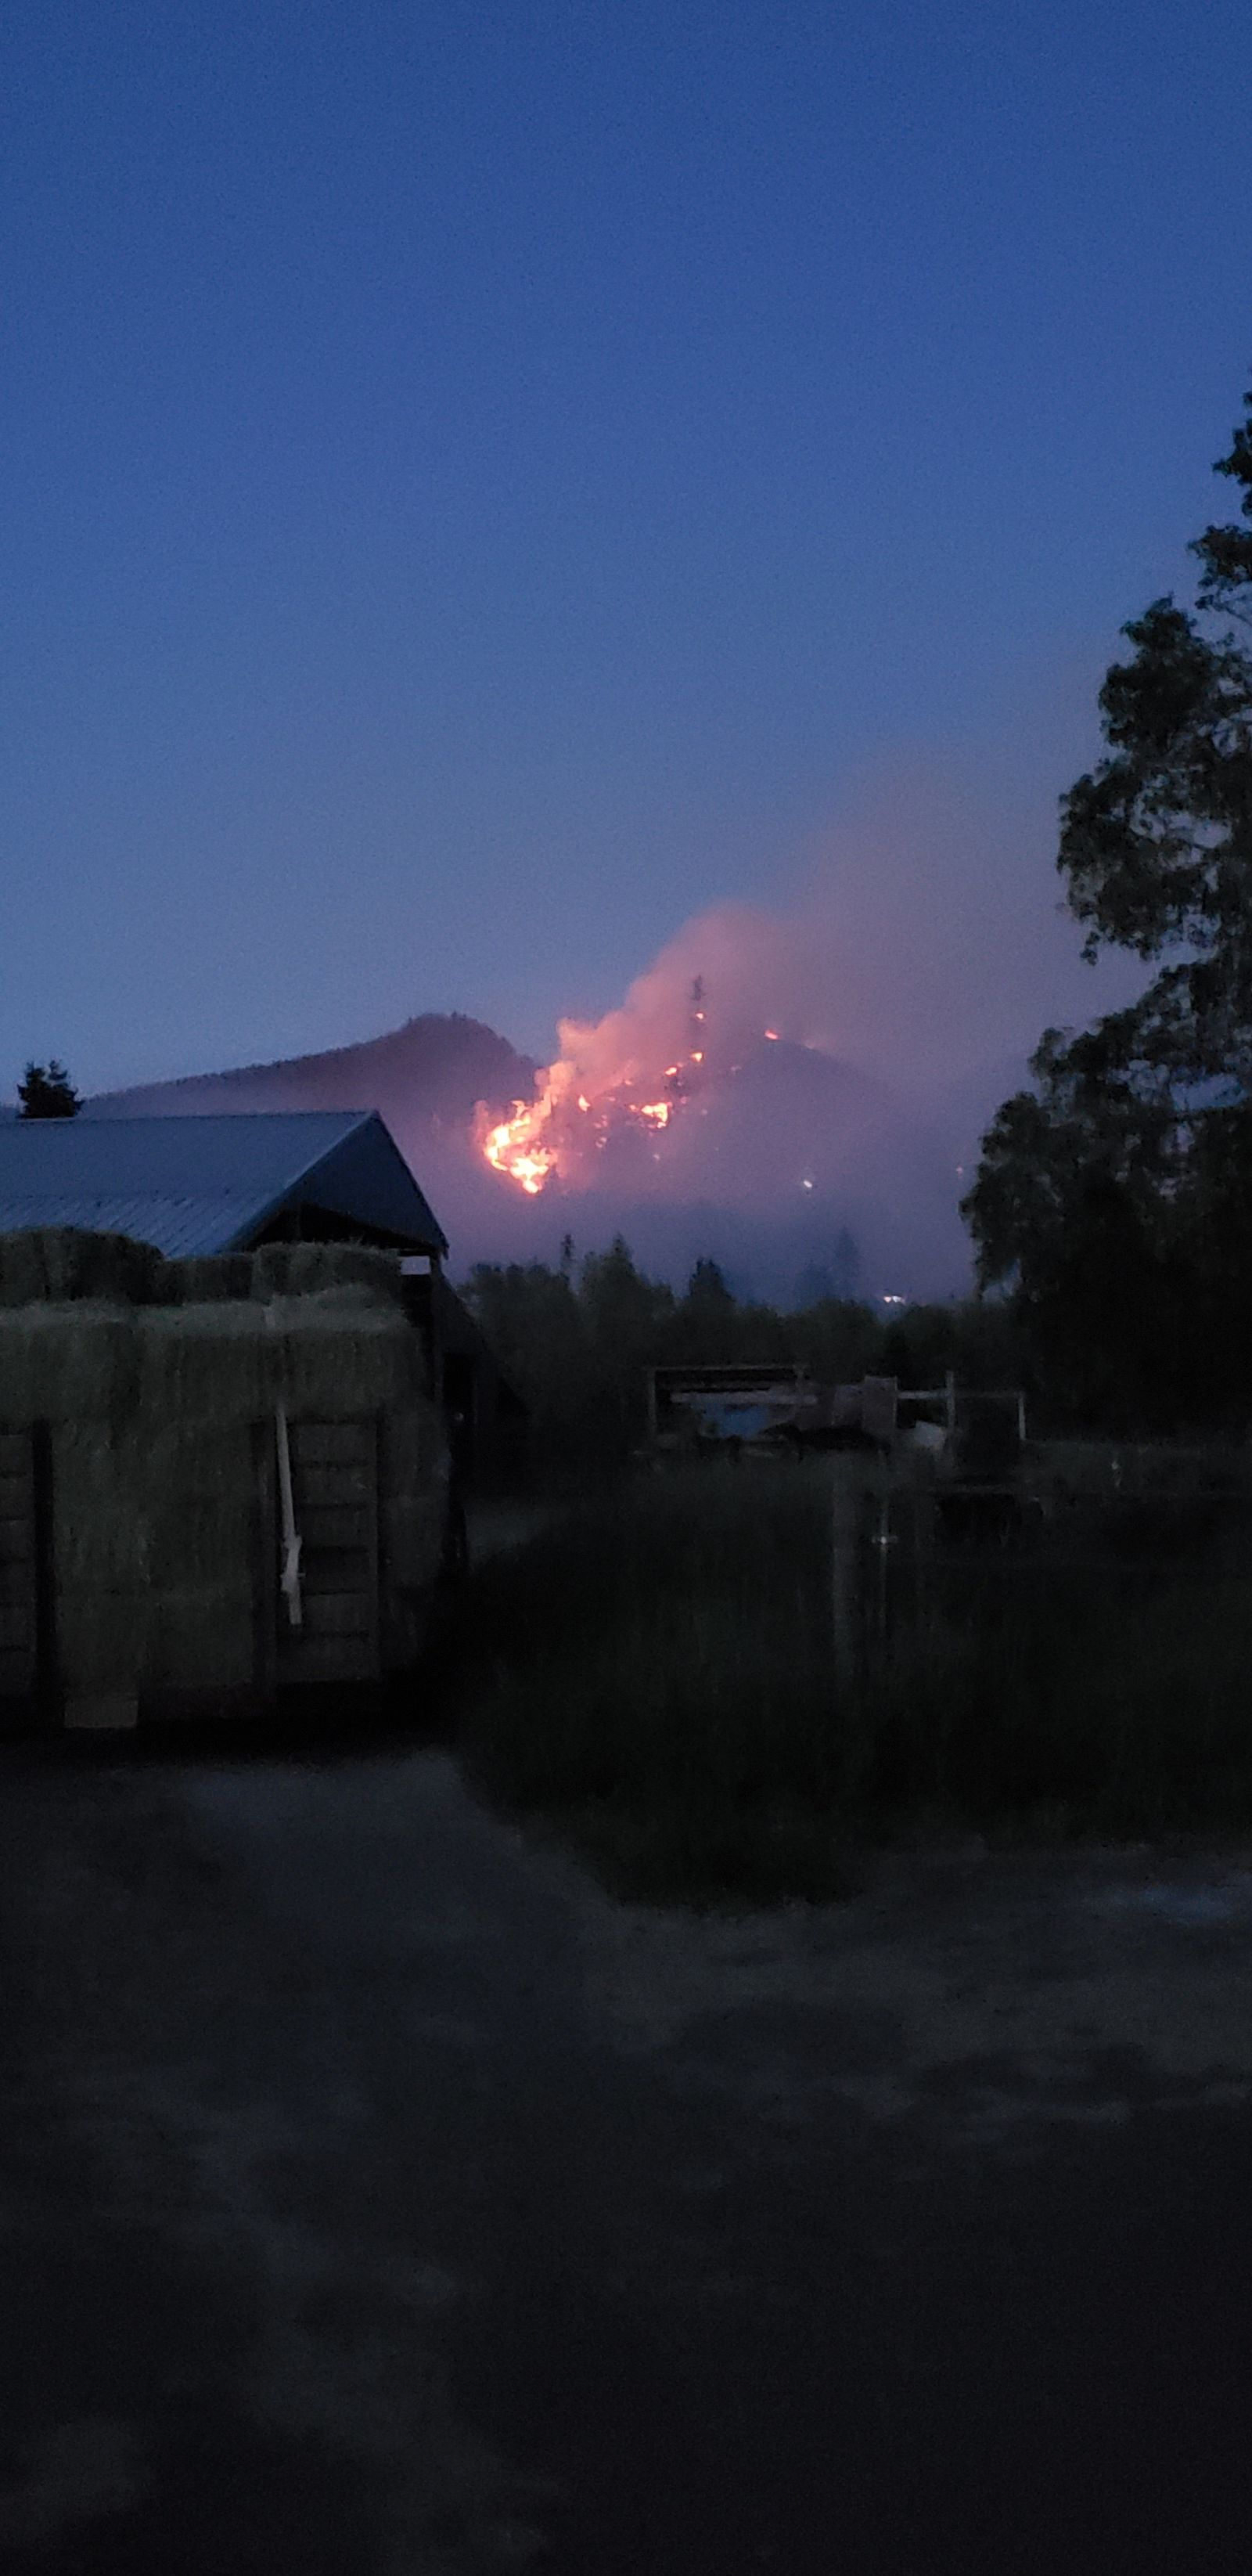 Michelle Lezcano shared this photo of the Dowens Road 2 Fire east of Cottage Grove, Oregon.